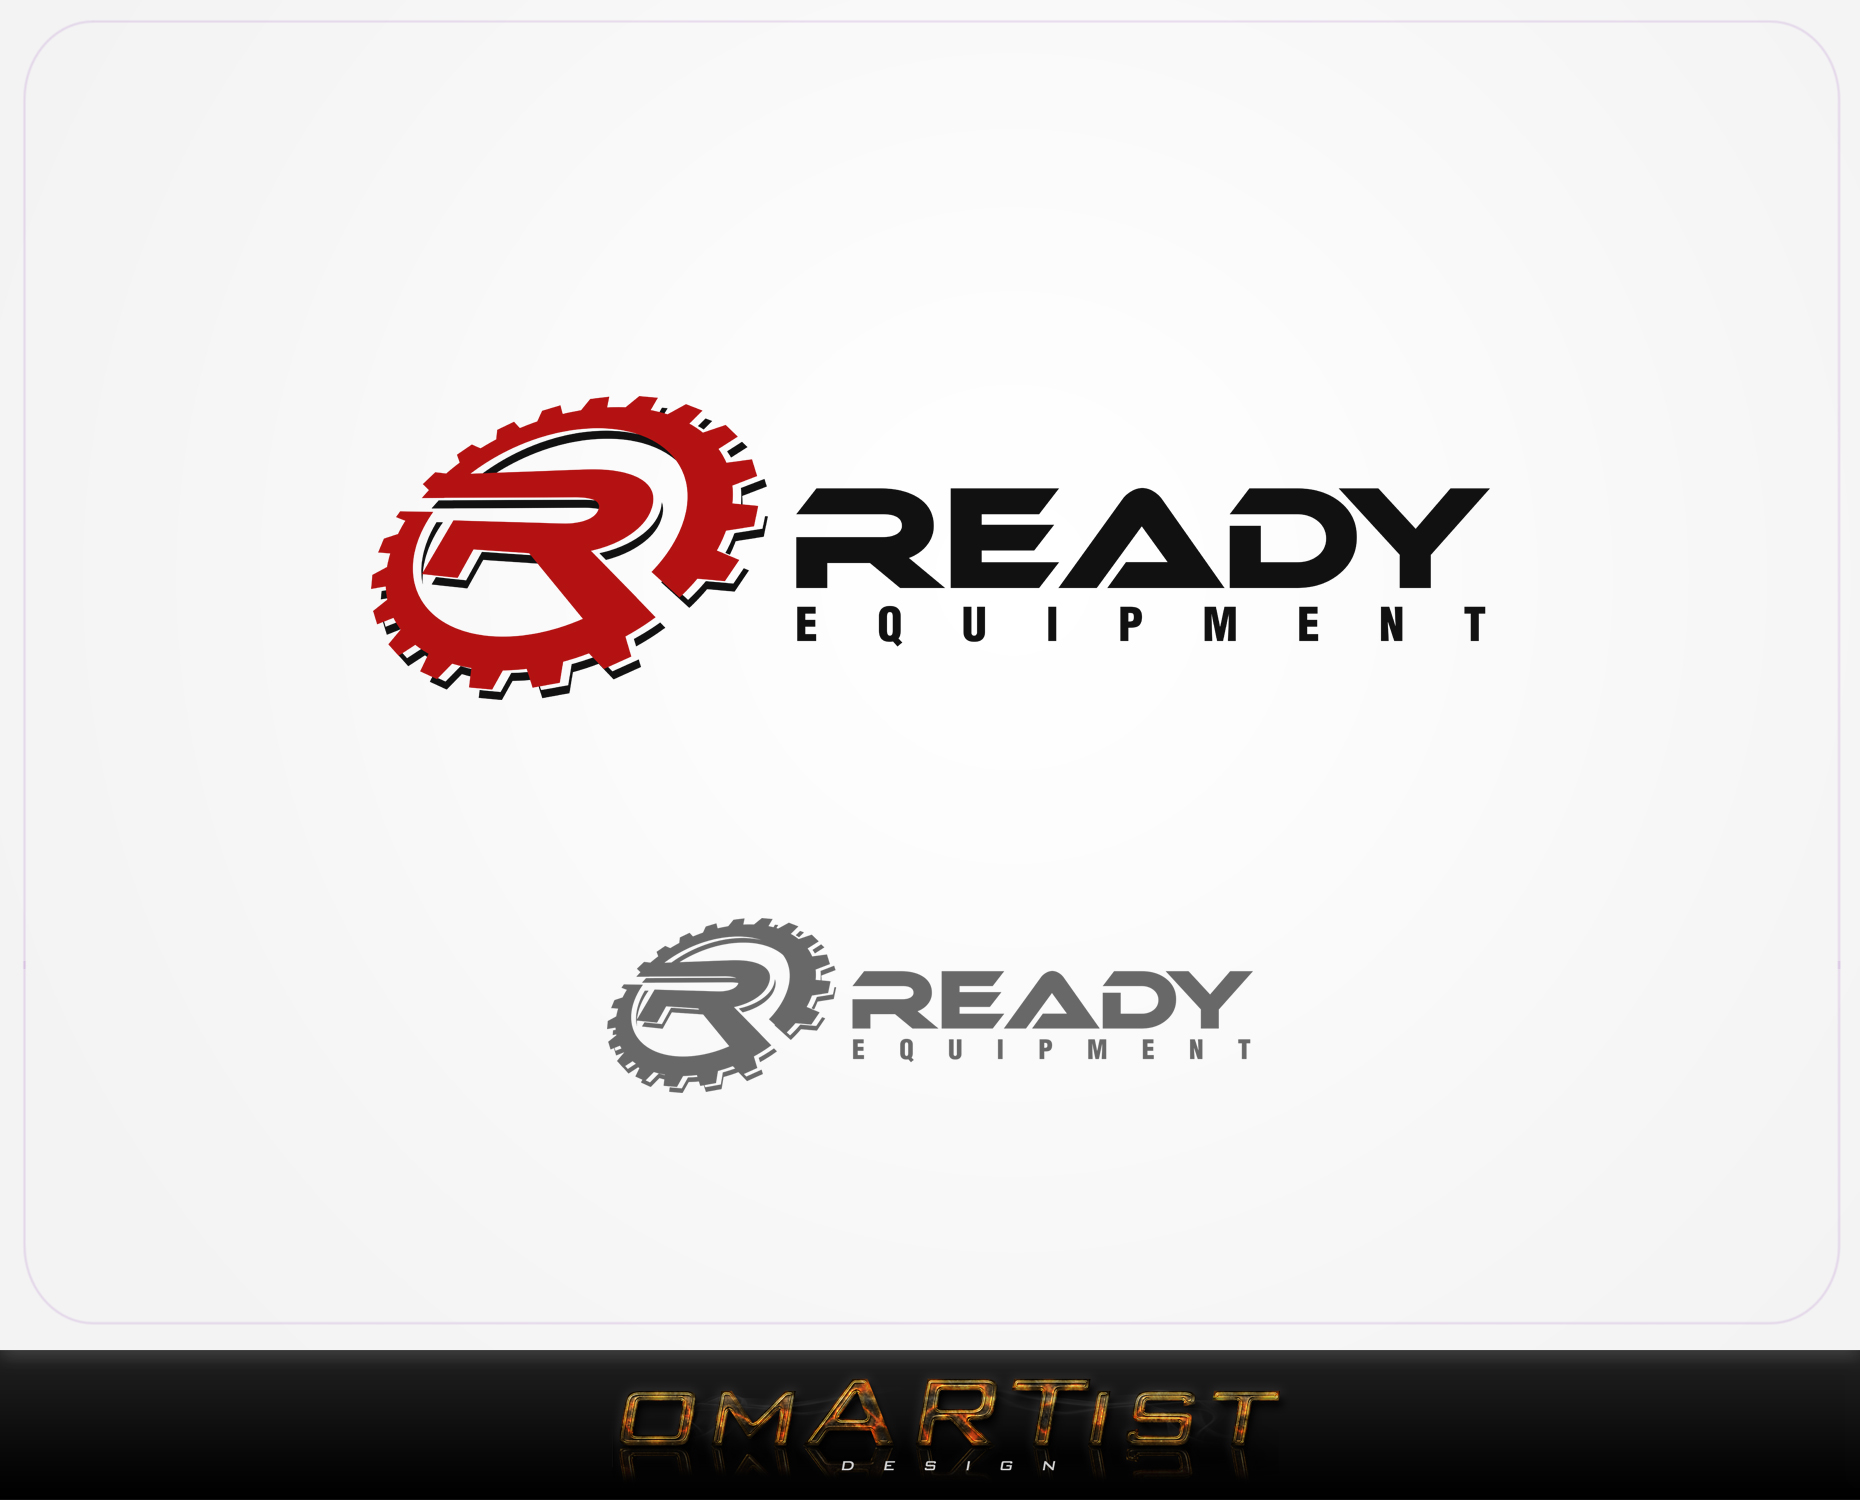 Logo Design by omARTist - Entry No. 214 in the Logo Design Contest Ready Equipment  Logo Design.